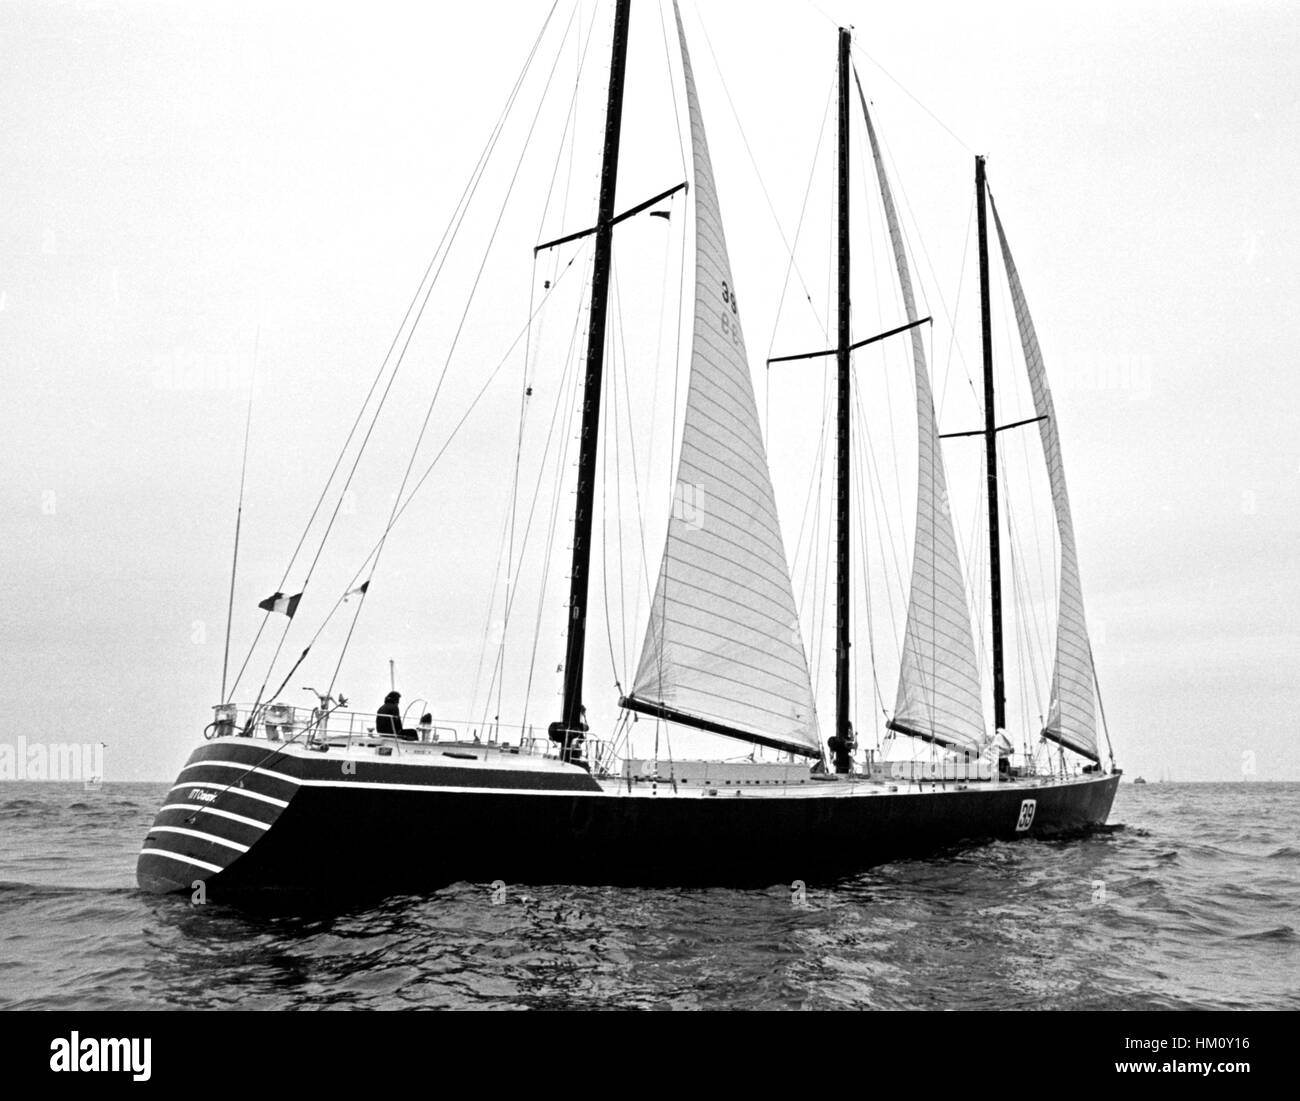 AJAXNETPHOTO. 6TH JUNE, 1976. PLYMOUTH, ENGLAND. - OSTAR 1976 - FRENCHMAN YVON FAUCONNIER SKIPPERED THE 128FT ITT - Stock Image